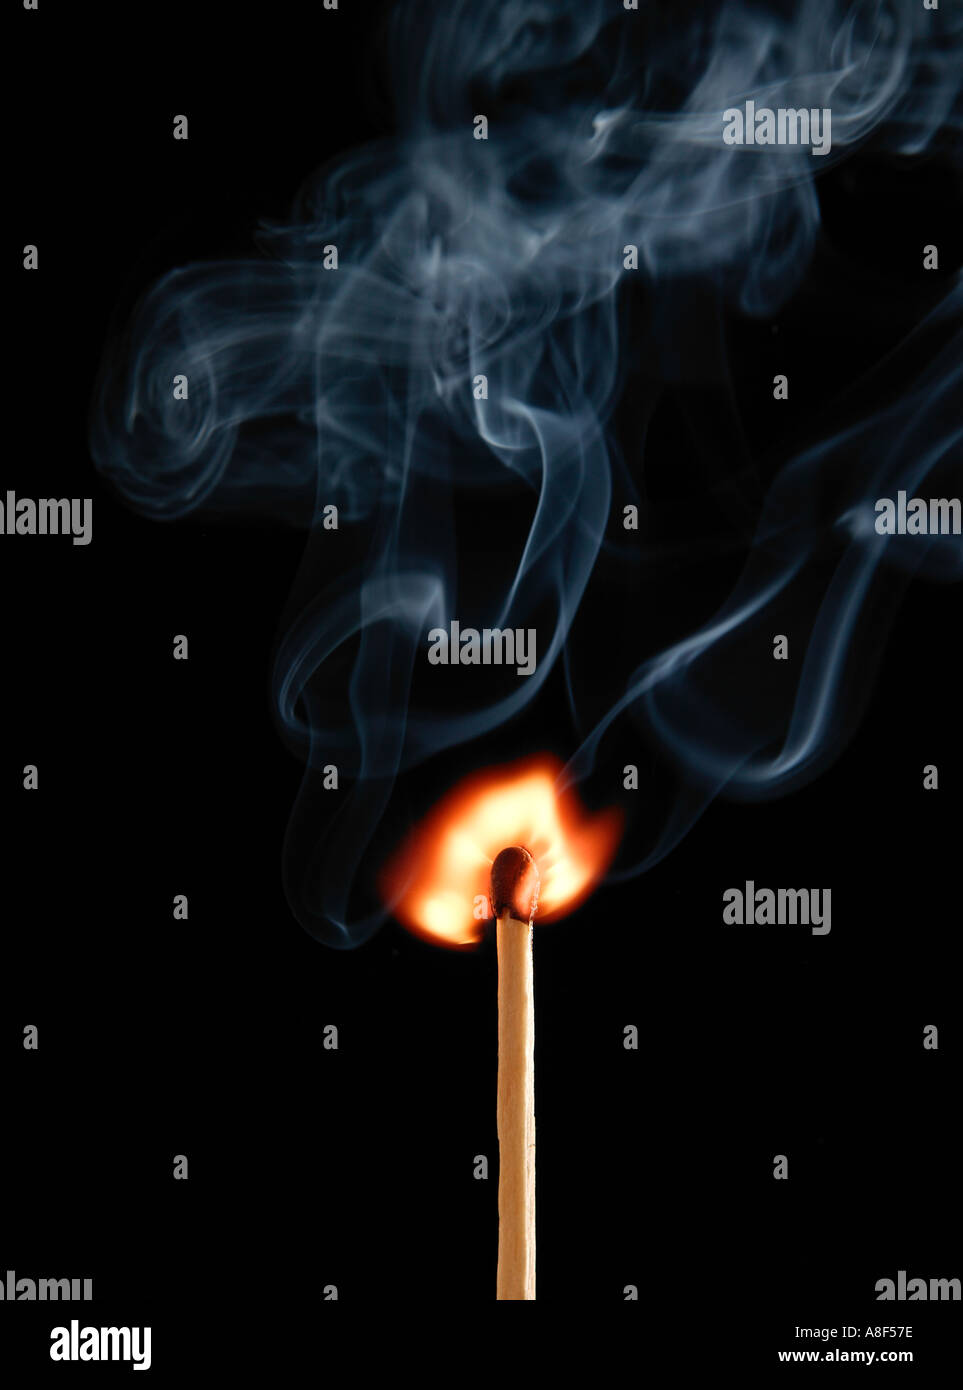 MATCH FLAME AND SMOKE ON BLACK BACKGROUND - Stock Image